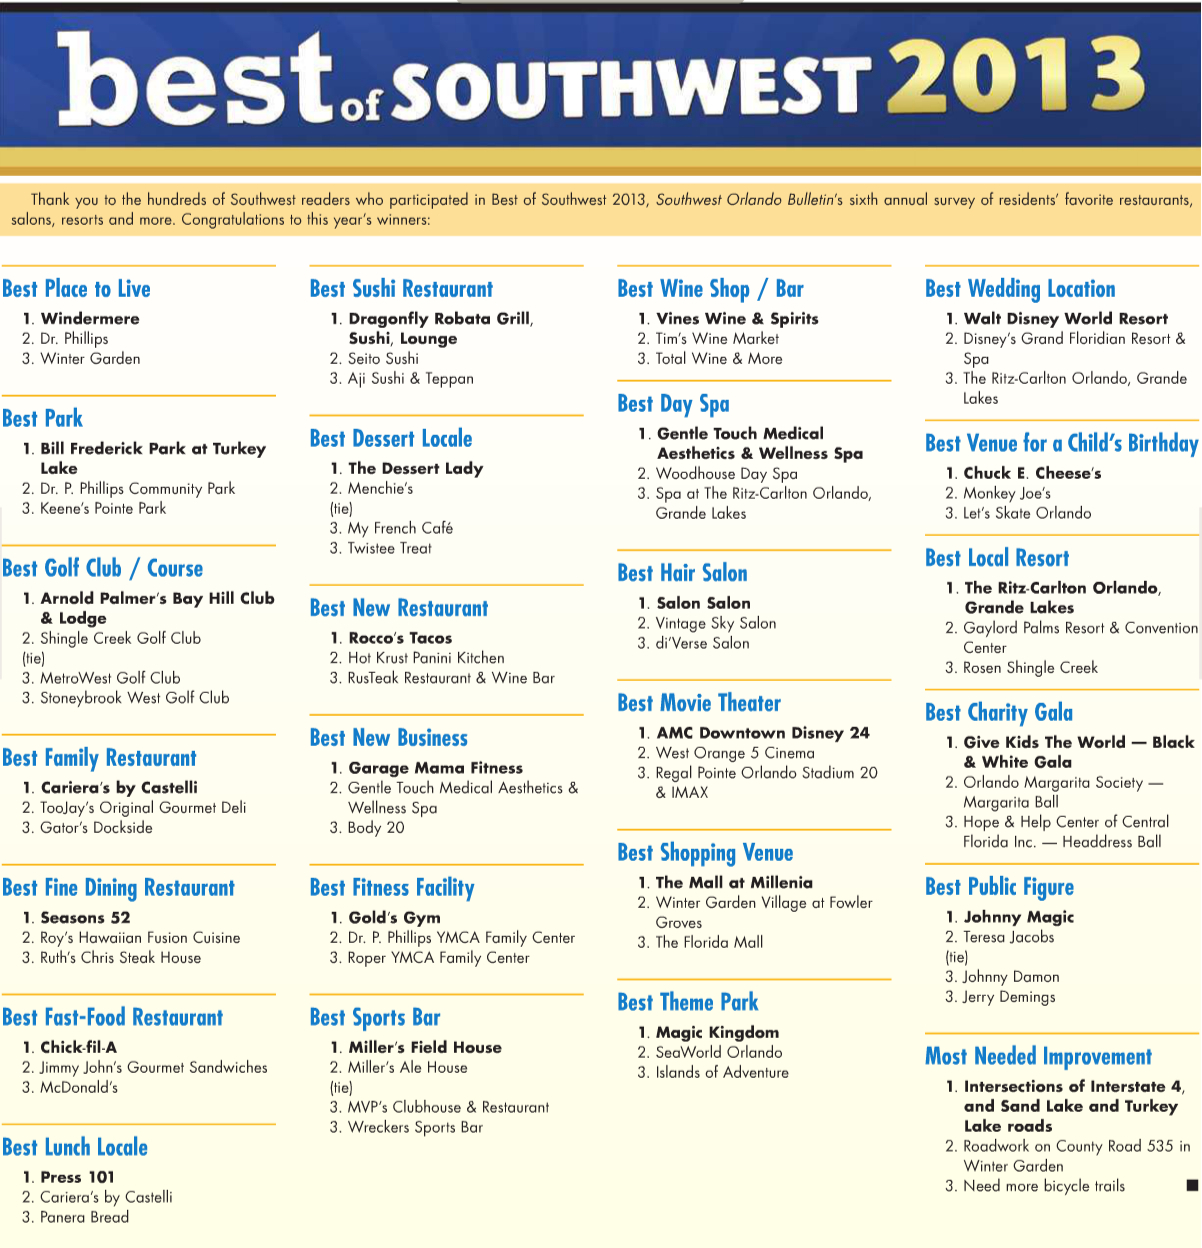 Windermere, FL voted Best Place to Live